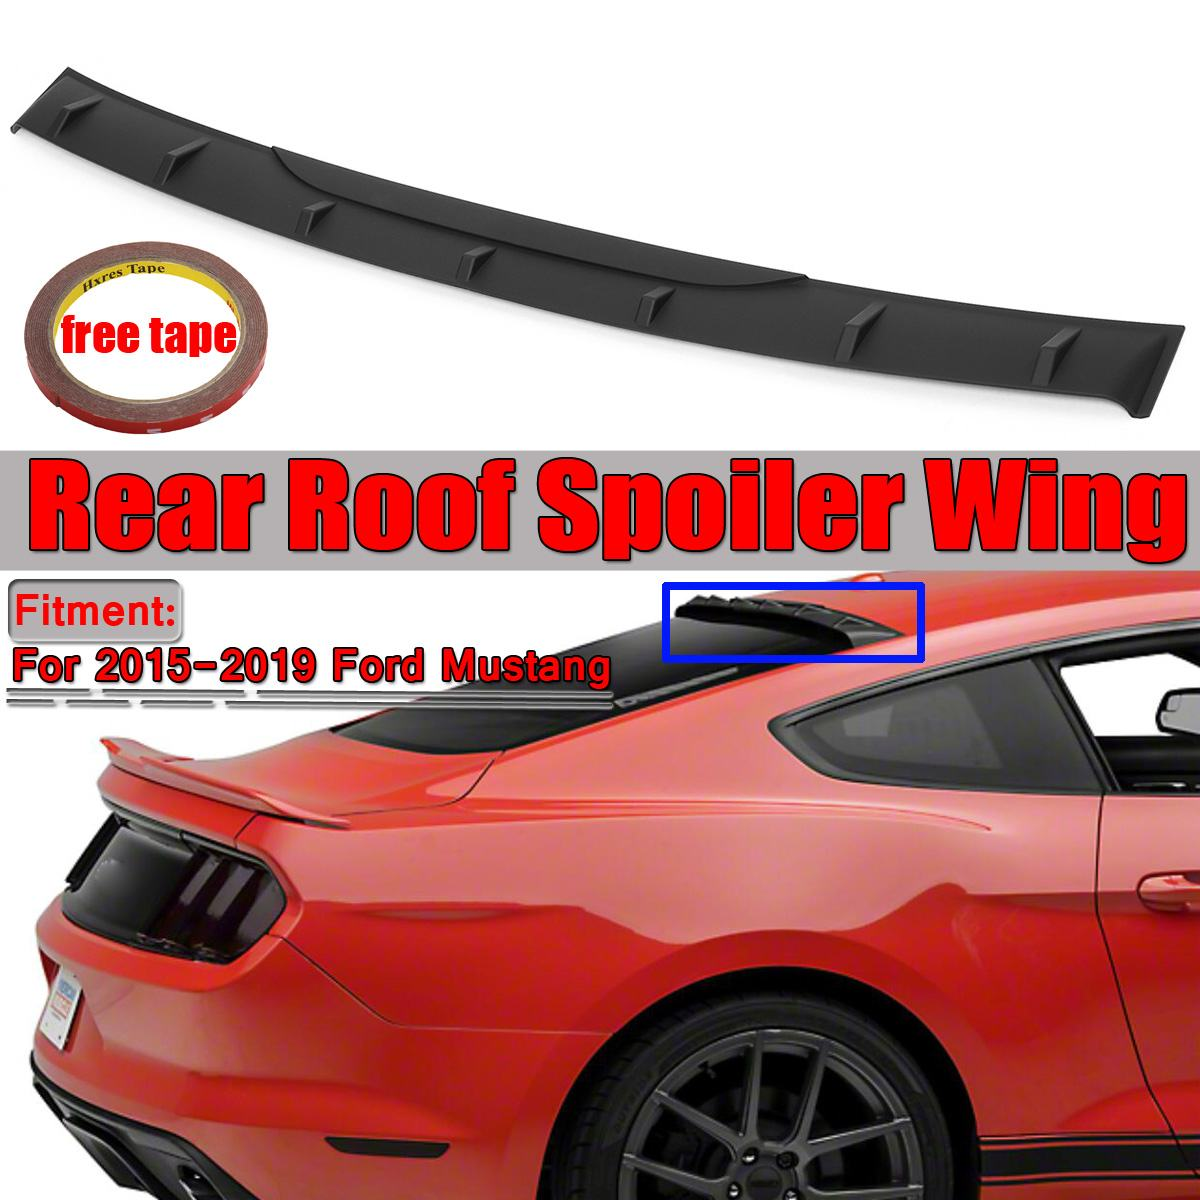 High Quality ABS Car Trunk Rear Roof Spoiler Wing For Ford For <font><b>Mustang</b></font> <font><b>2015</b></font> 2016 2017 2018 <font><b>2019</b></font> MP Style Rear Spoiler Wings image